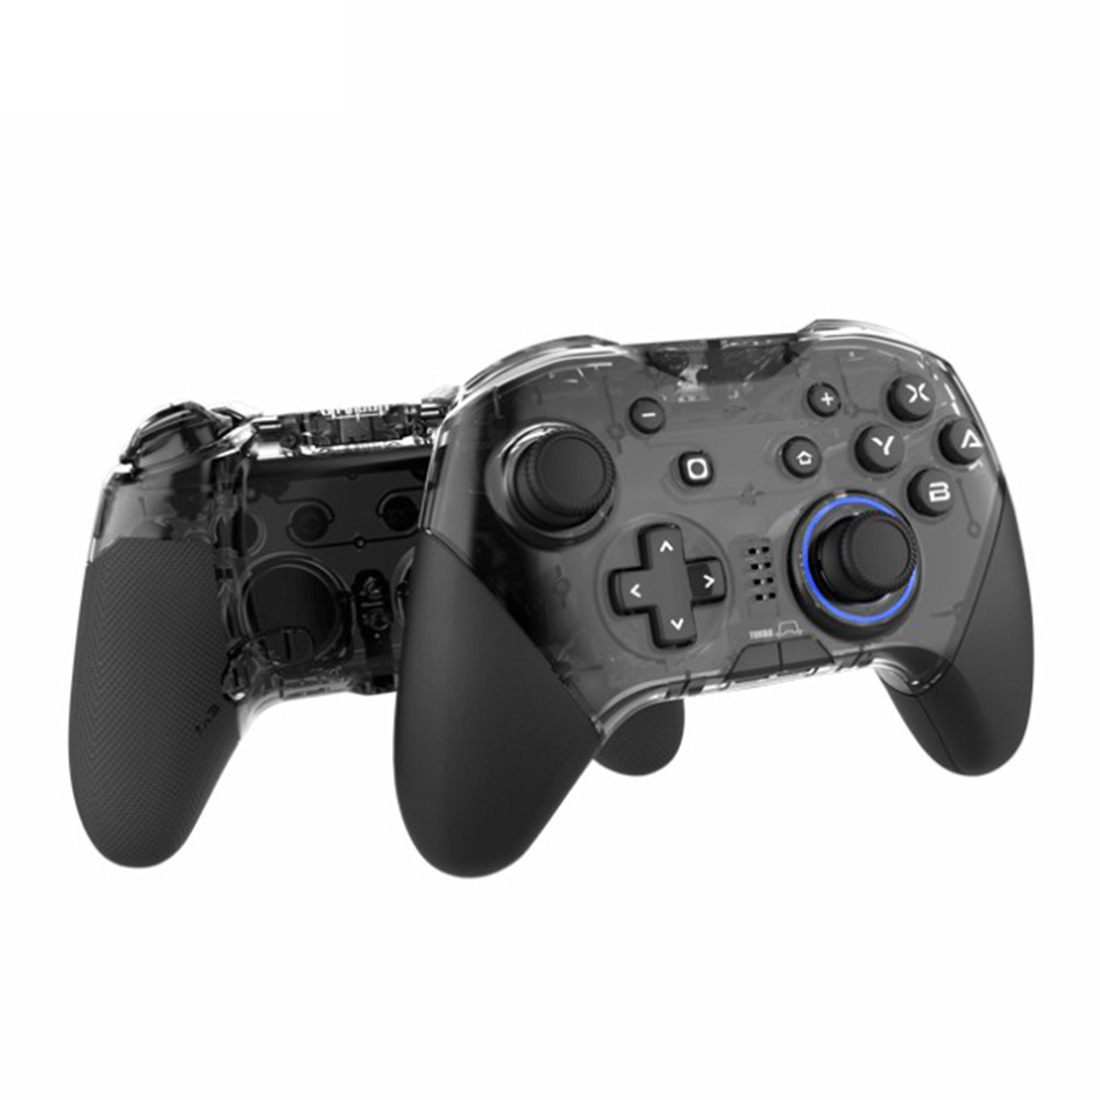 Bluetooth Game Controller Support NFC Macroprogramming Vibration Adjustment for Switch /PC /Steam